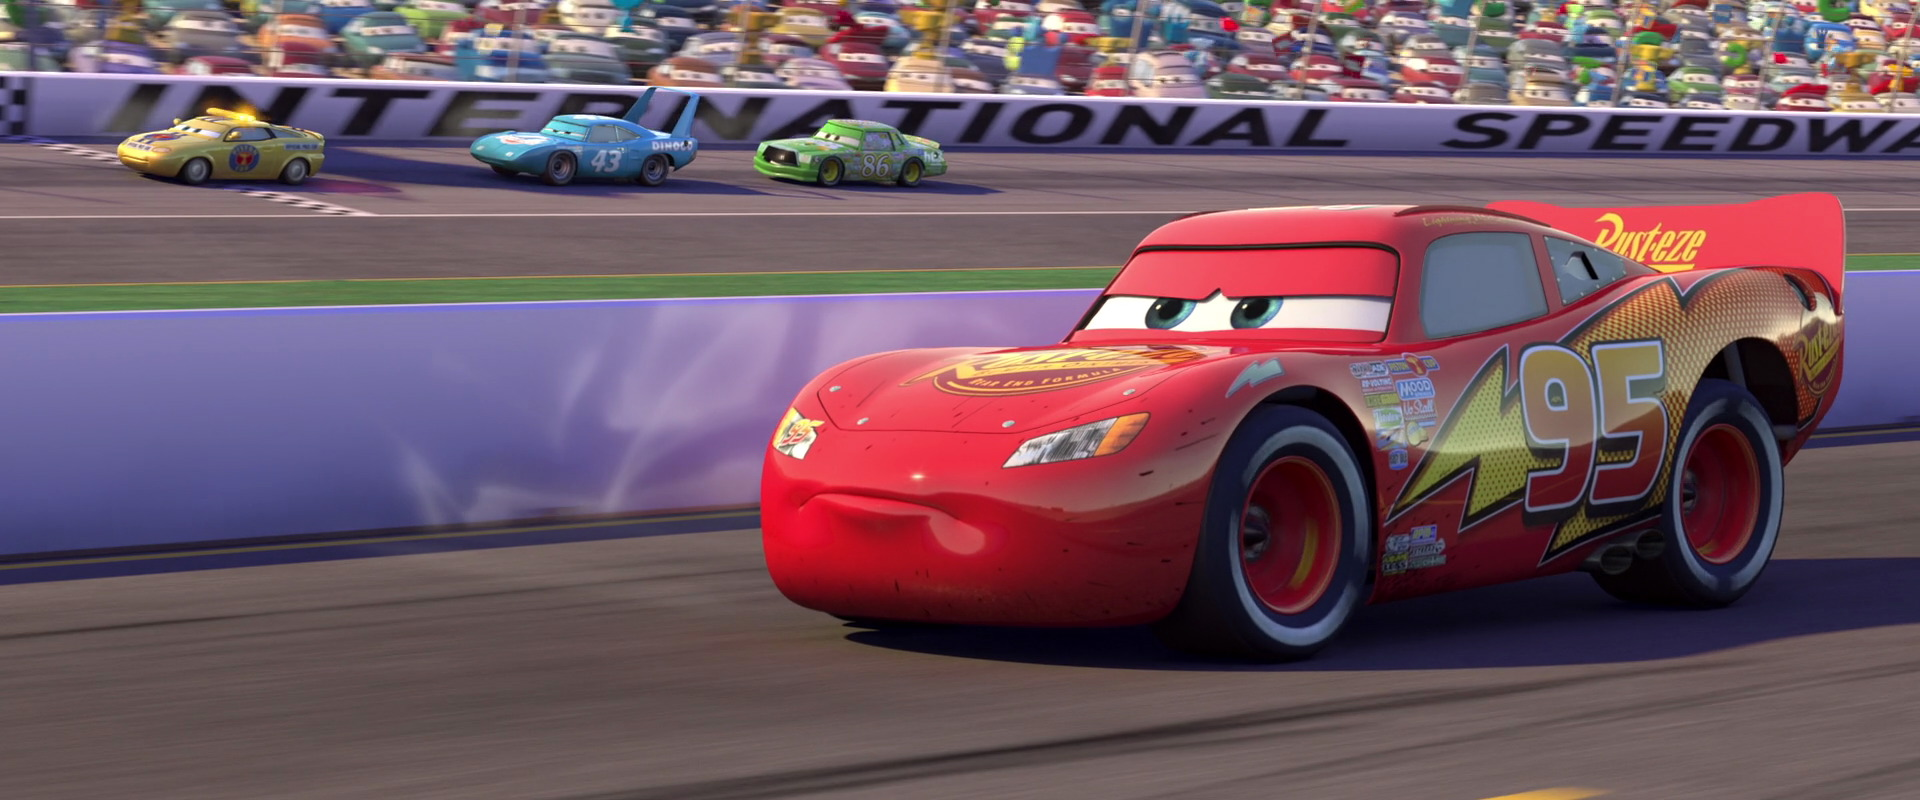 flash mcqueen personnage dans cars pixar planet fr. Black Bedroom Furniture Sets. Home Design Ideas